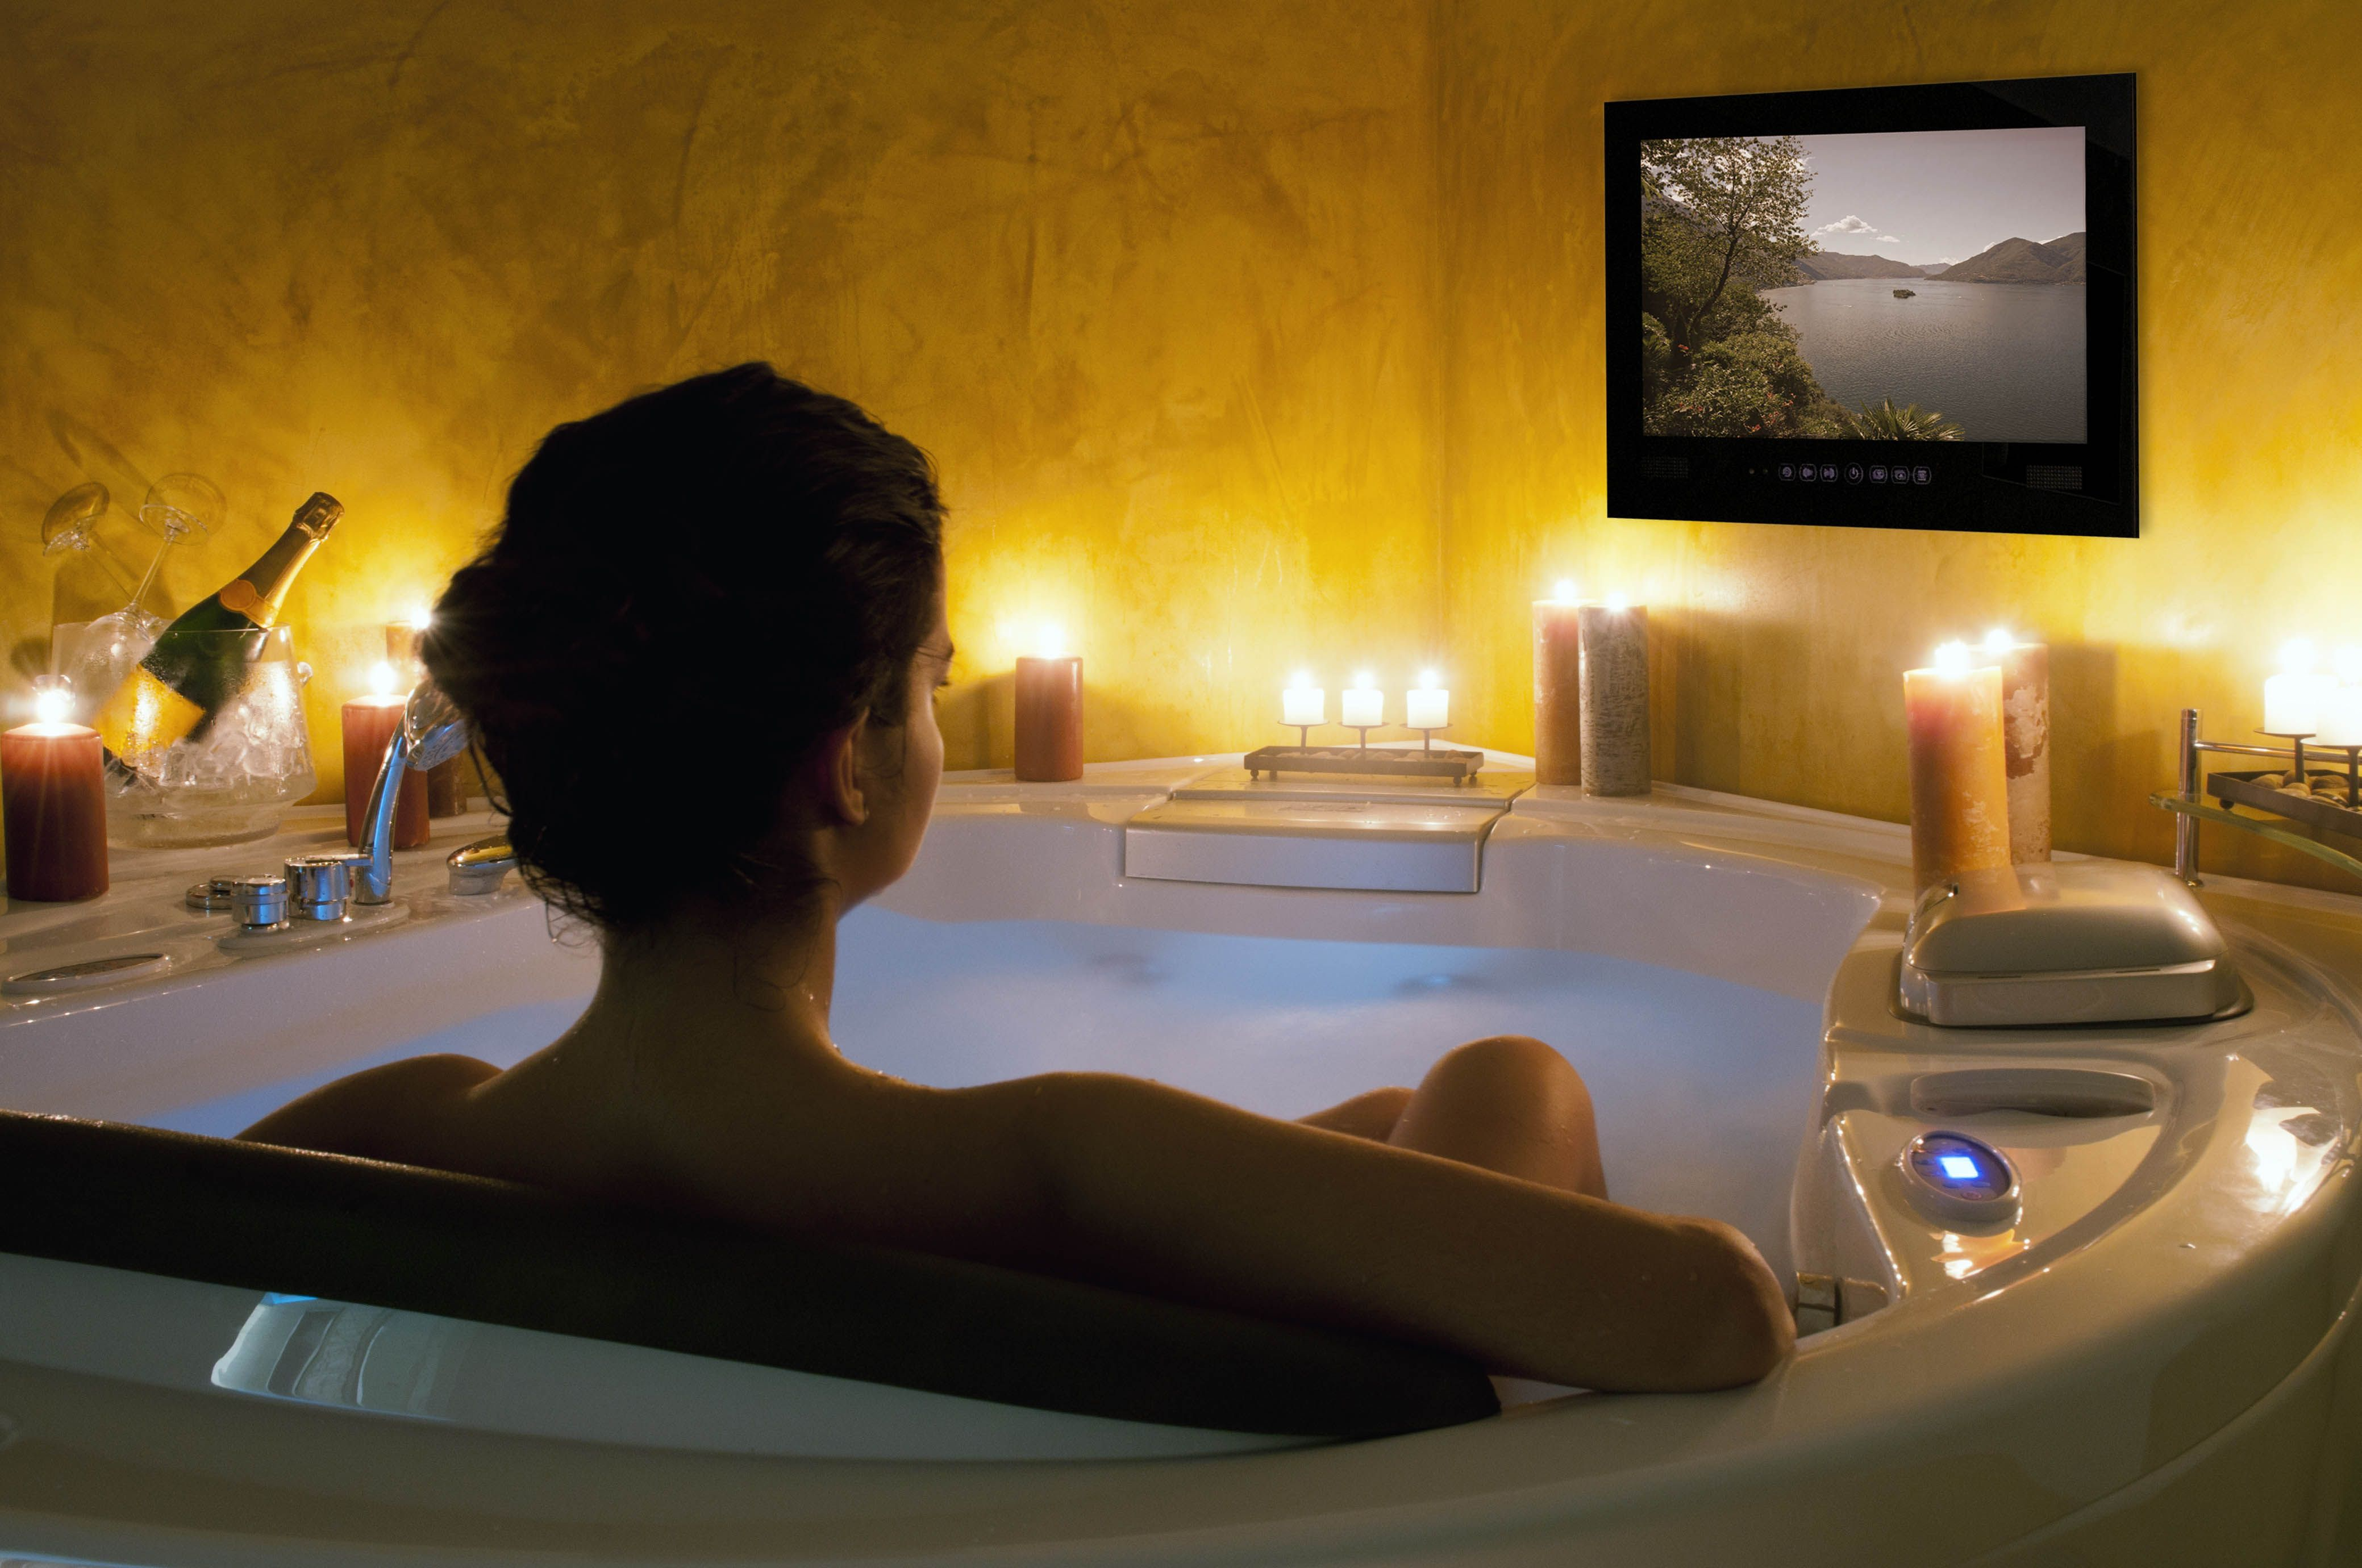 Modern relaxing buy a bathroom tv to watch in the bath things i